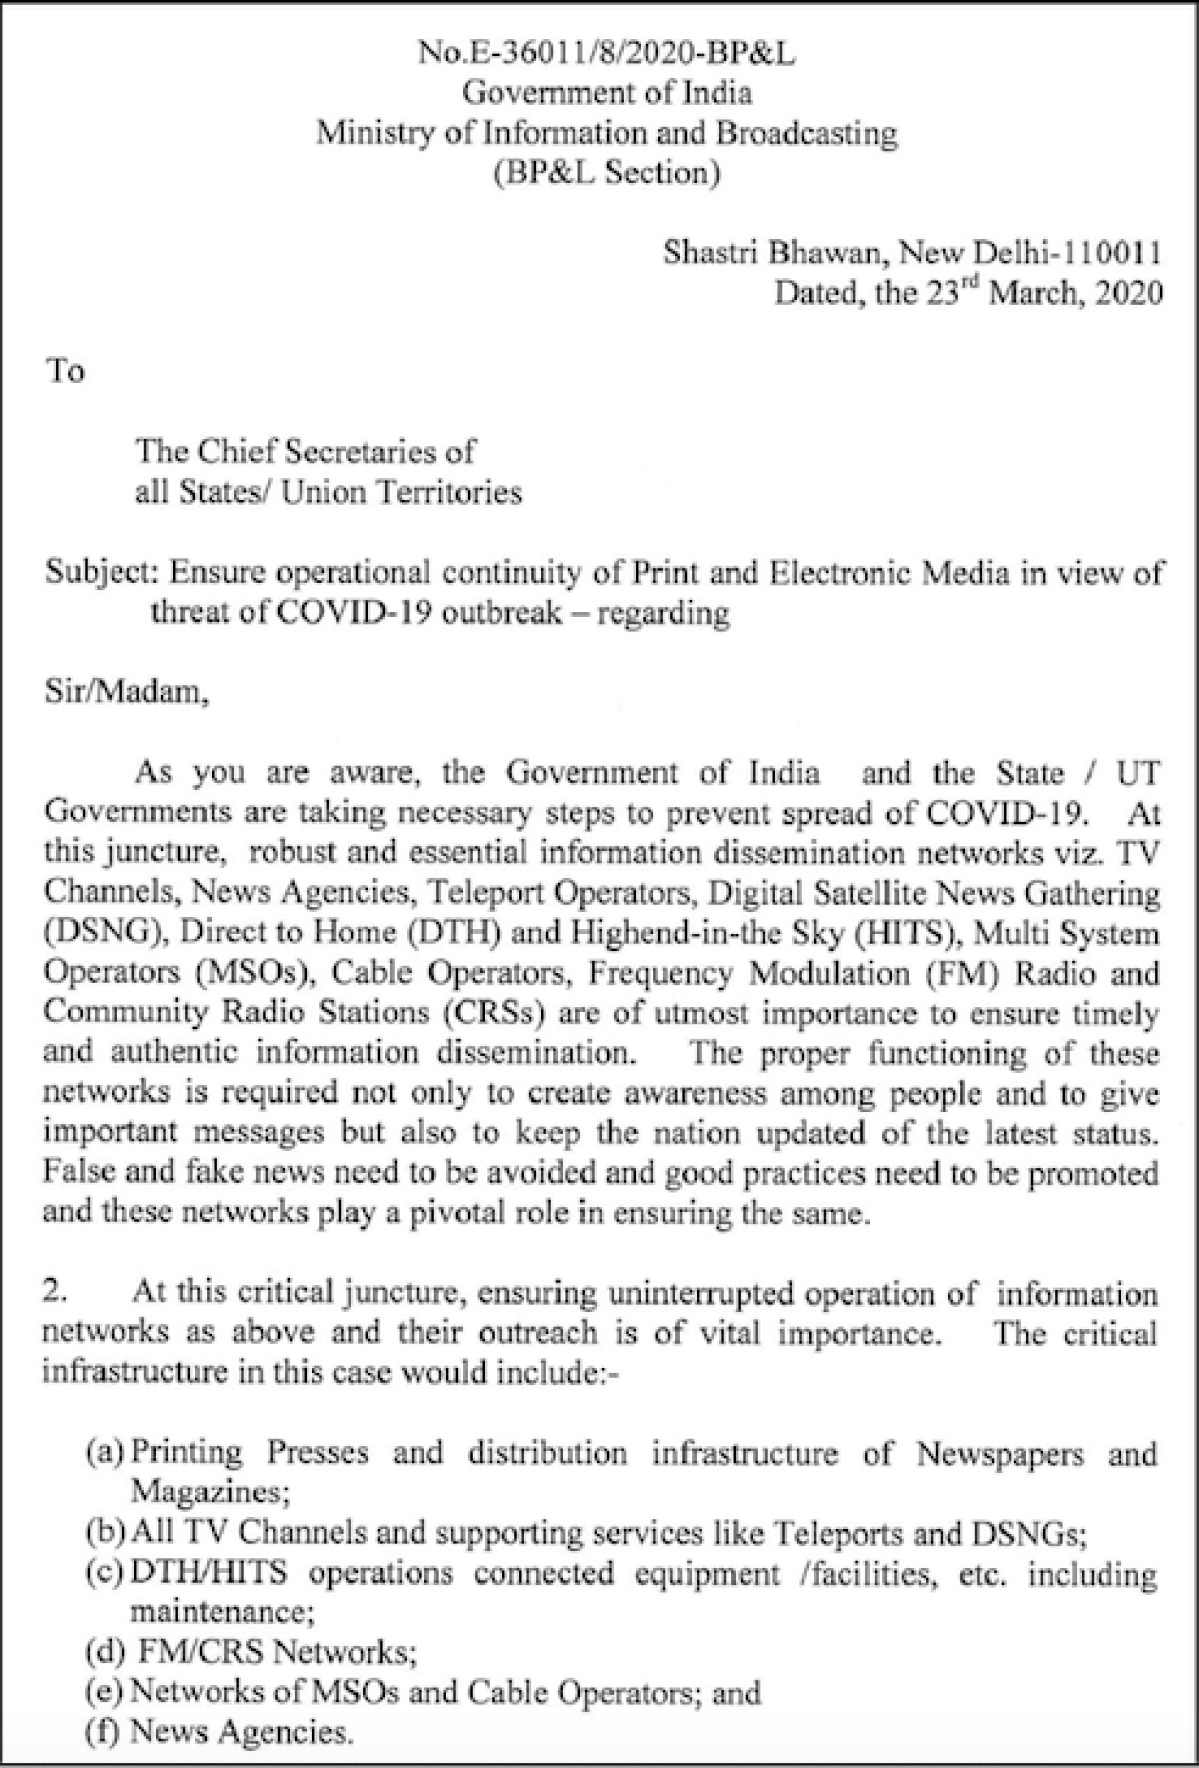 Ensure continuous operation of print, electronic media to curb spread of fake news amid COVID-19: I&B Ministry requests state govts